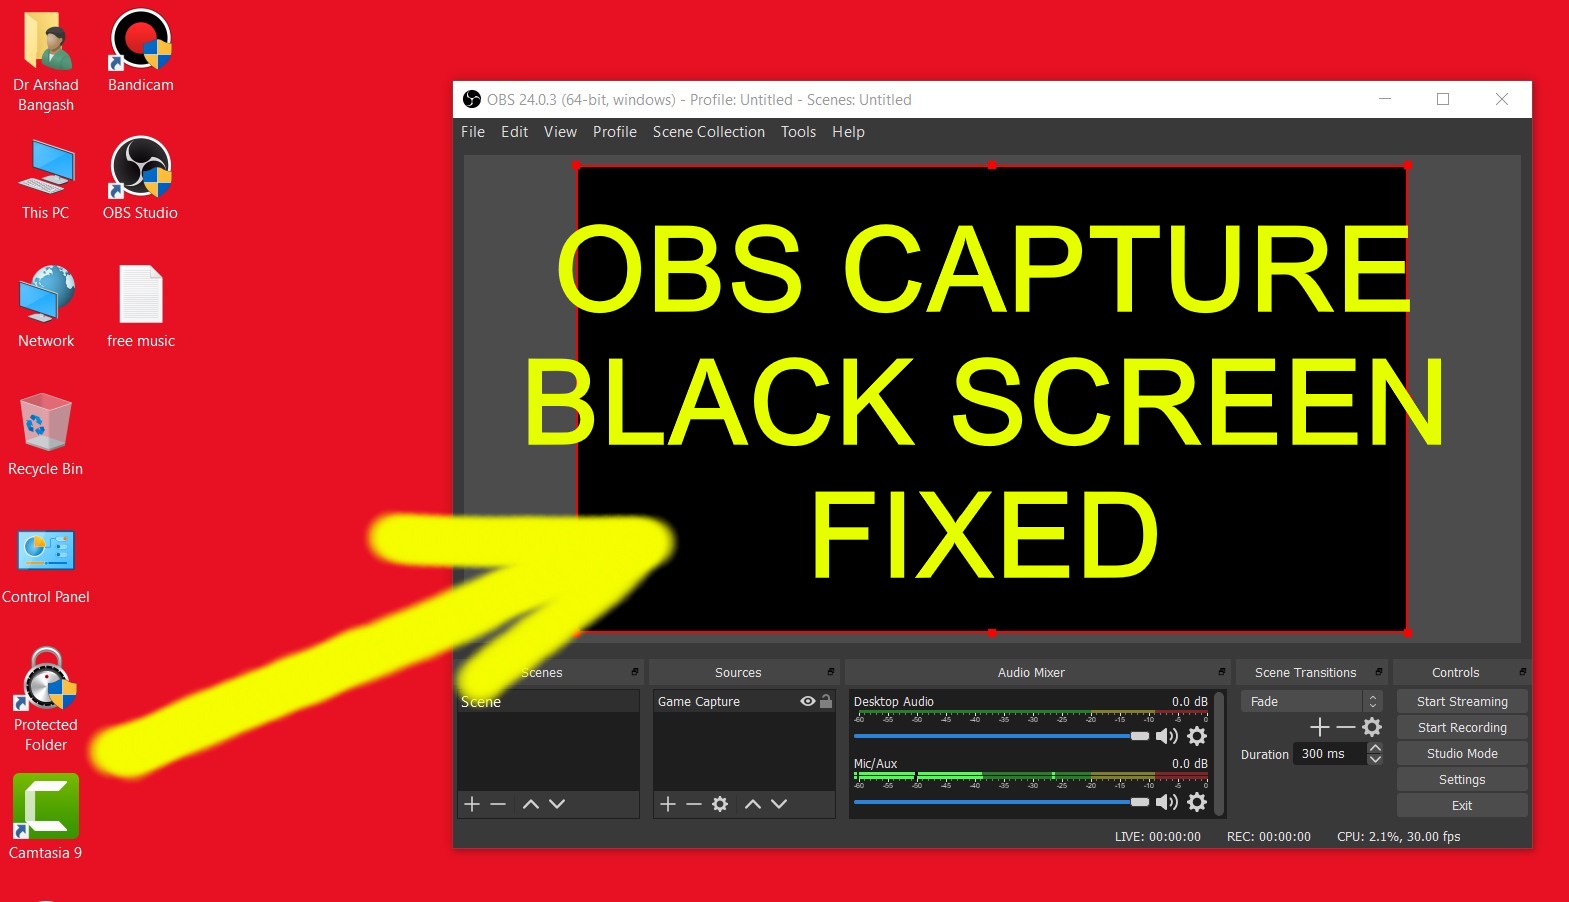 [FIXED 2020] OBS Game Capture Black screen - OBS is not capturing screen display